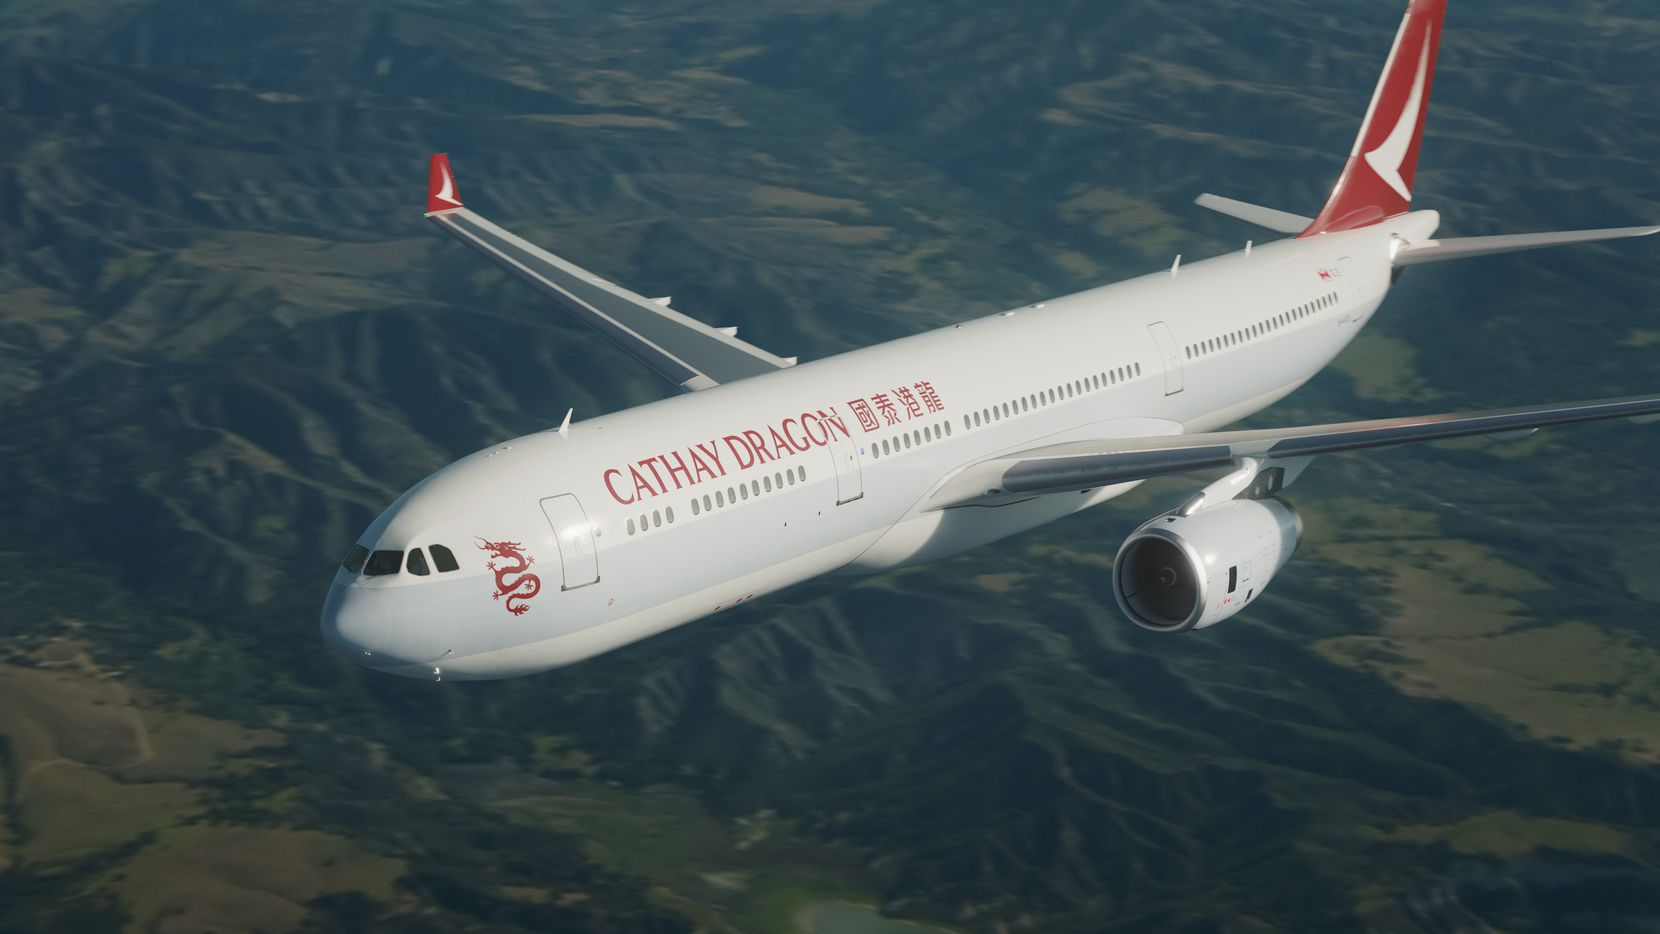 The agreement with Cathay Dragon Airlines strengthens American's ties to Asia.